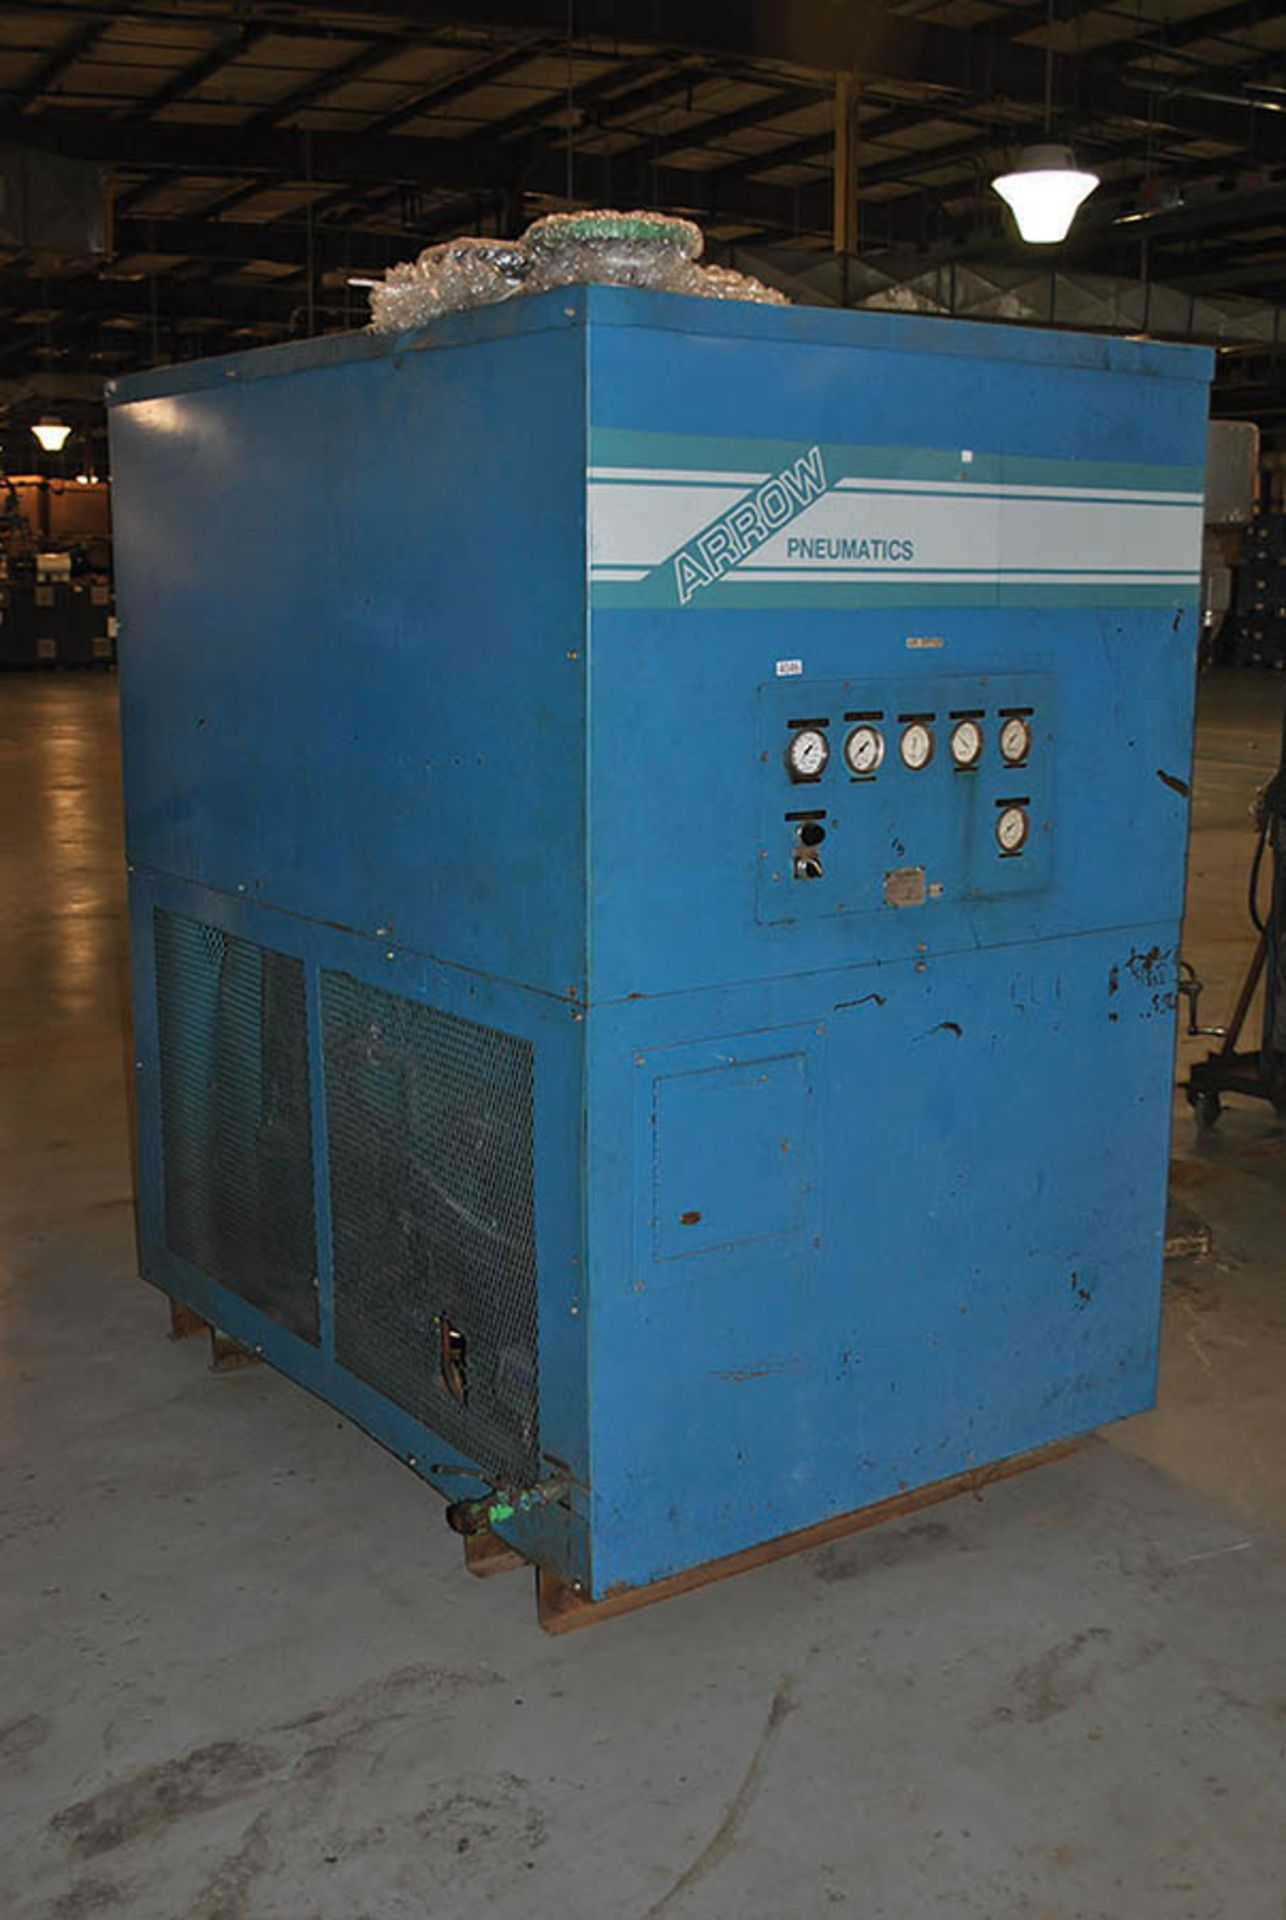 Lot 135 - ARROW PNEUMATIC AIR DRYER, MODEL 3517W, S/N 14370